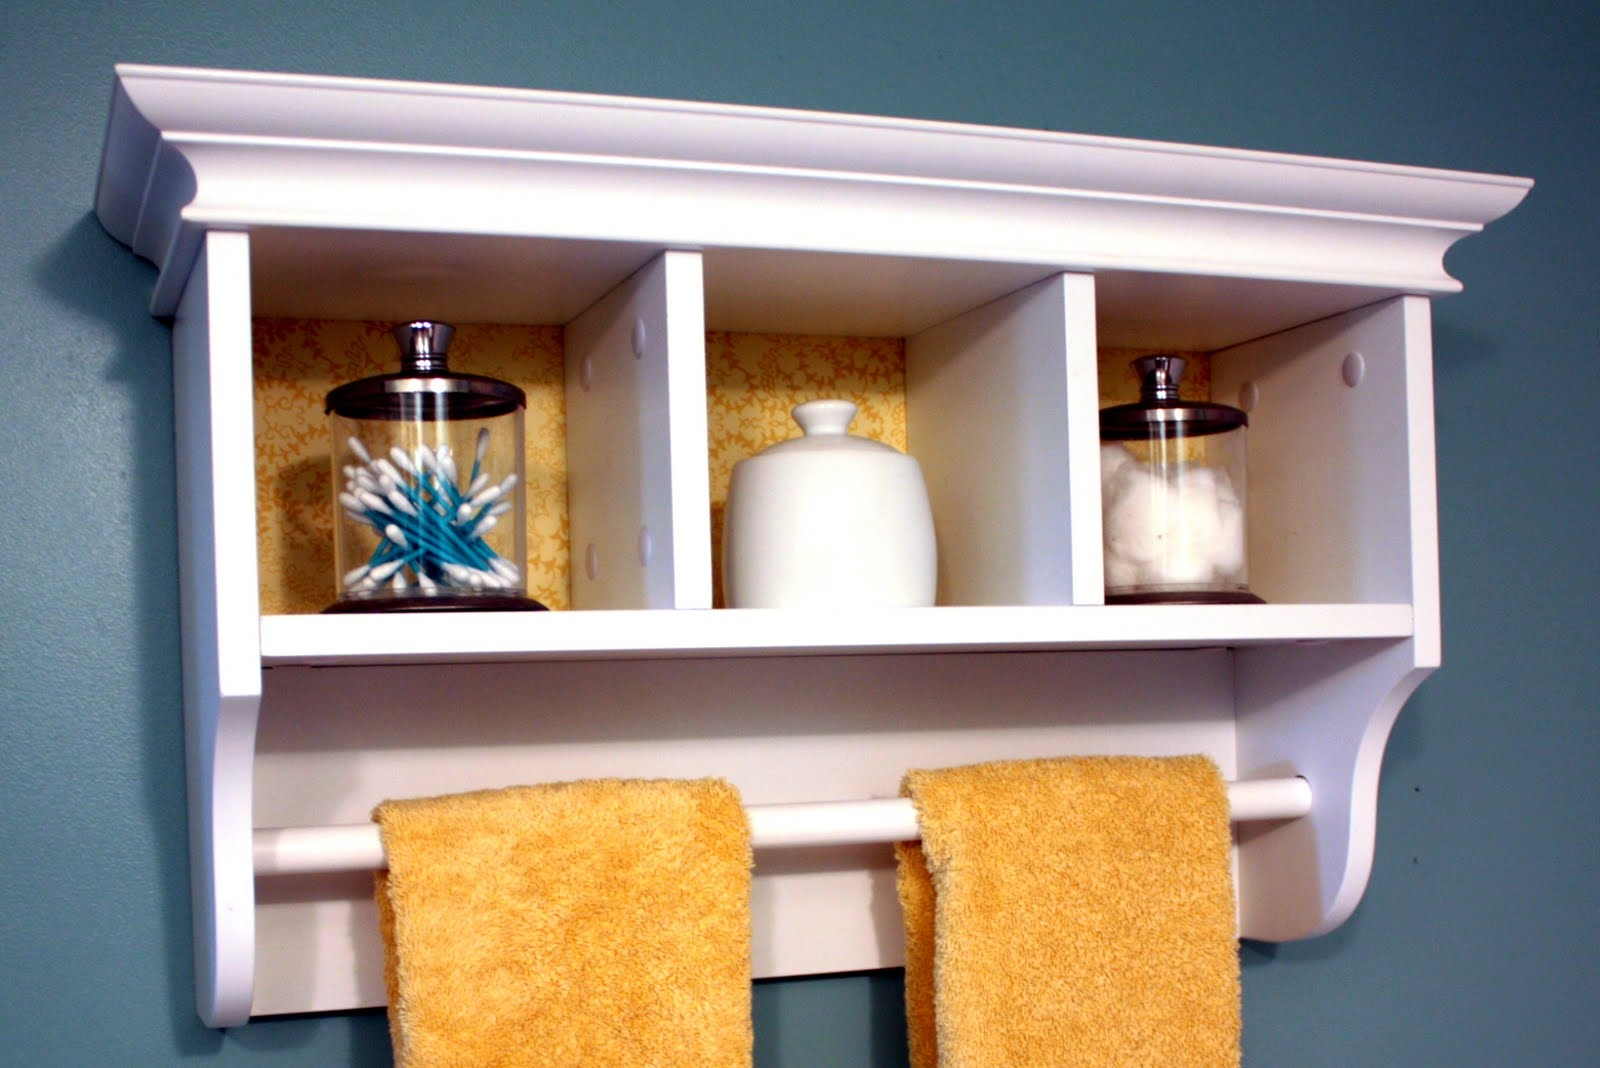 White Bathroom Cabinet With Towel Bar - Veterinariancolleges